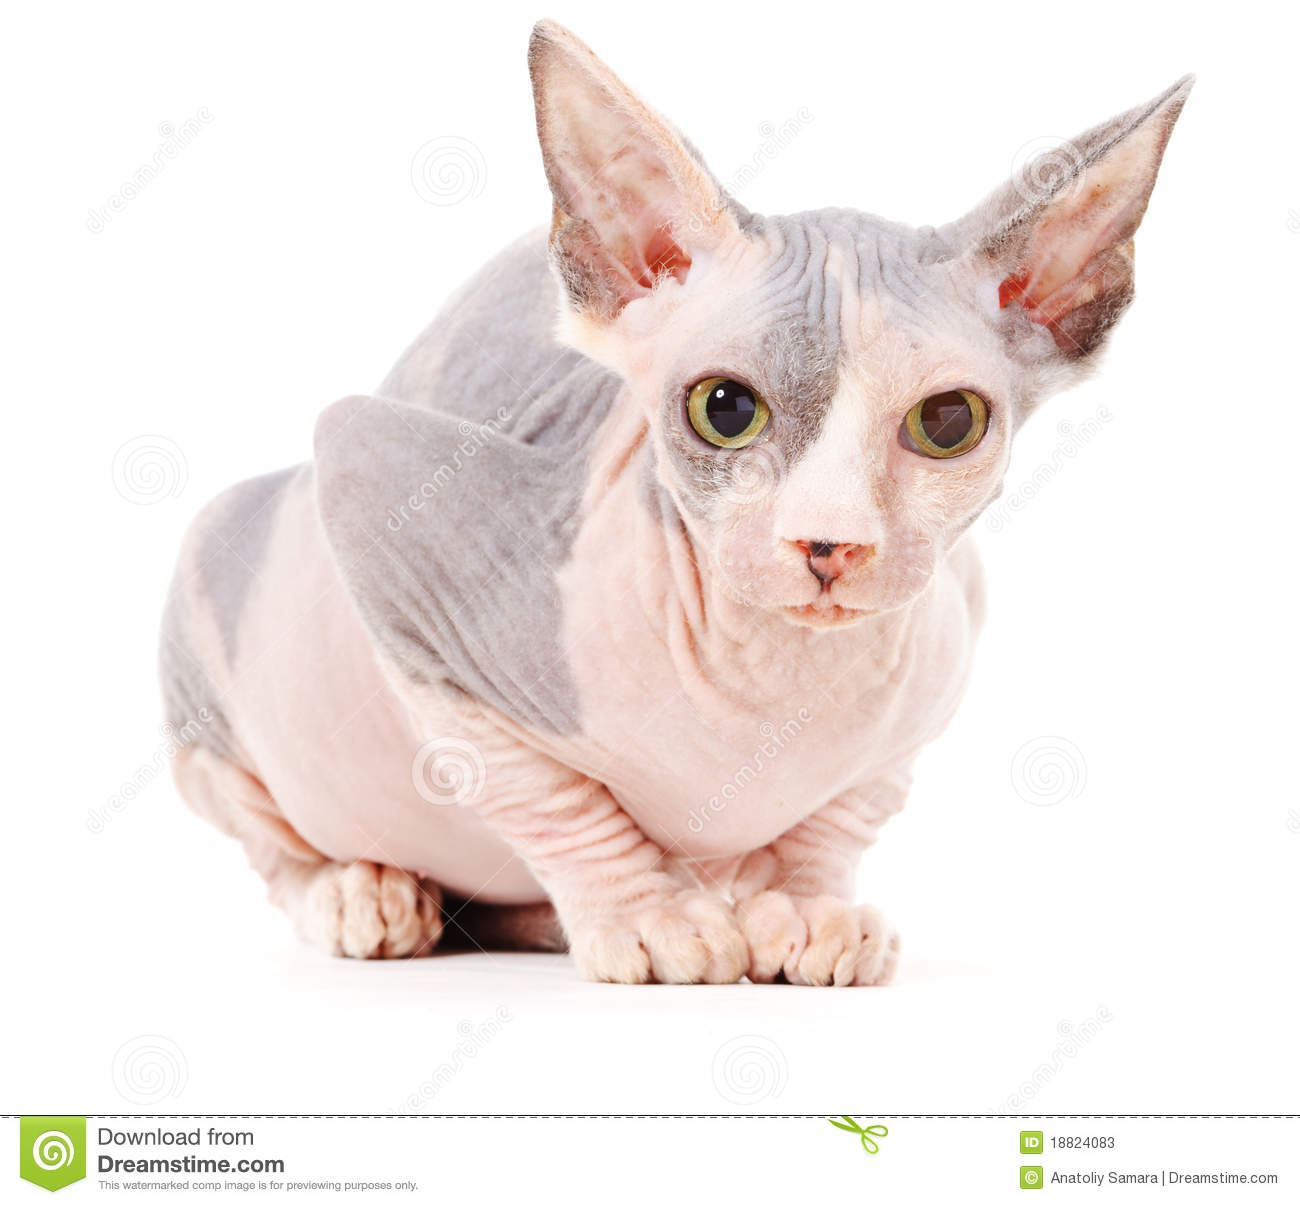 Sphynx Cat Stock Image. Image Of Cute, Donsphinx, Litter